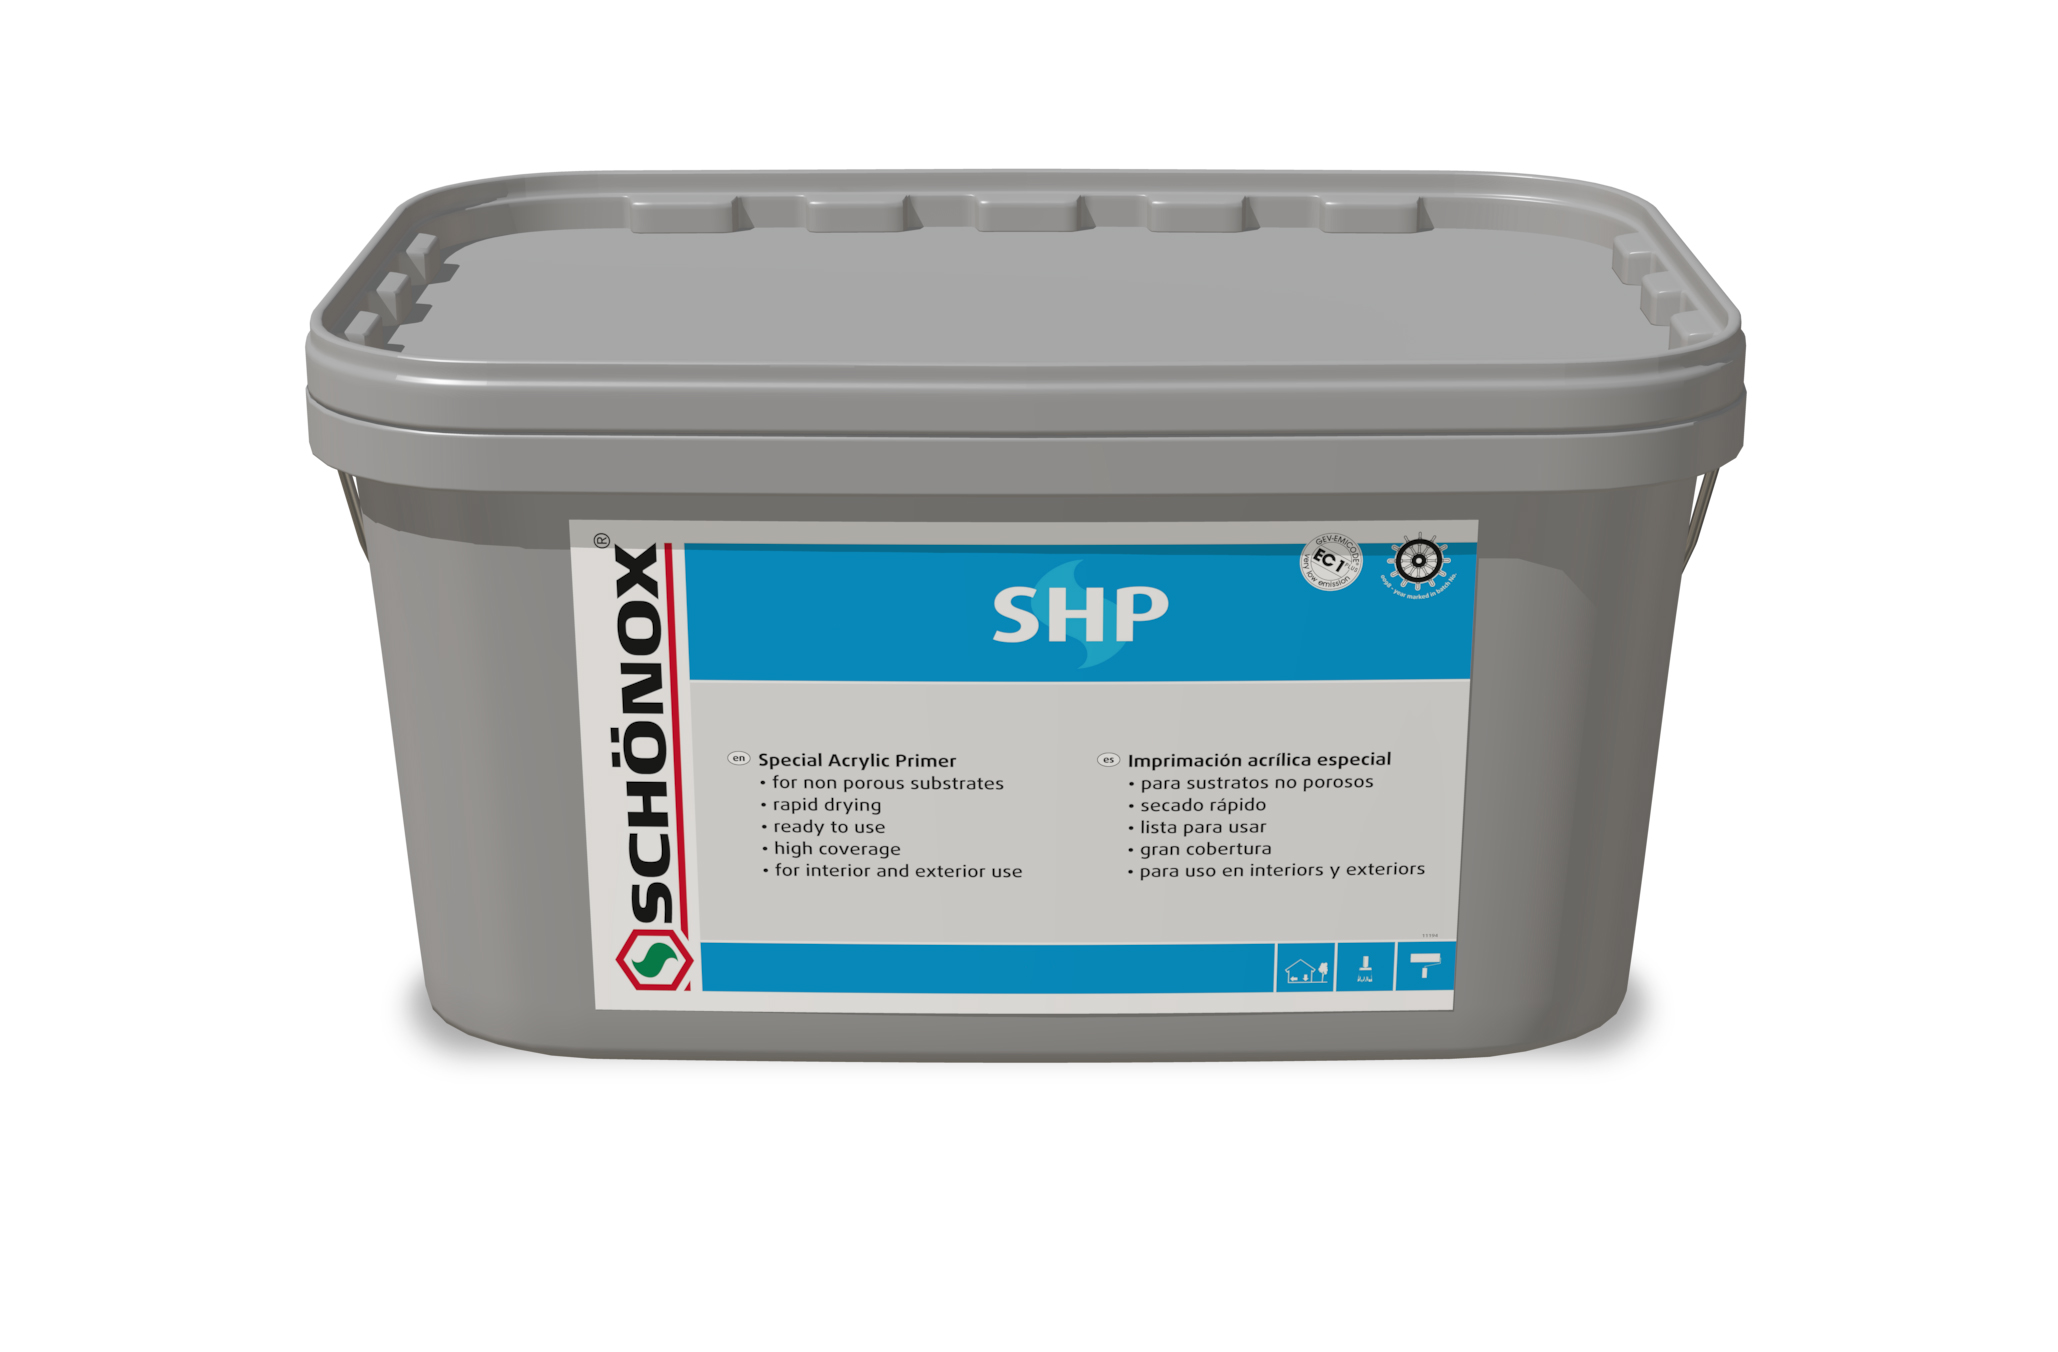 Image of SHP Product Bucket